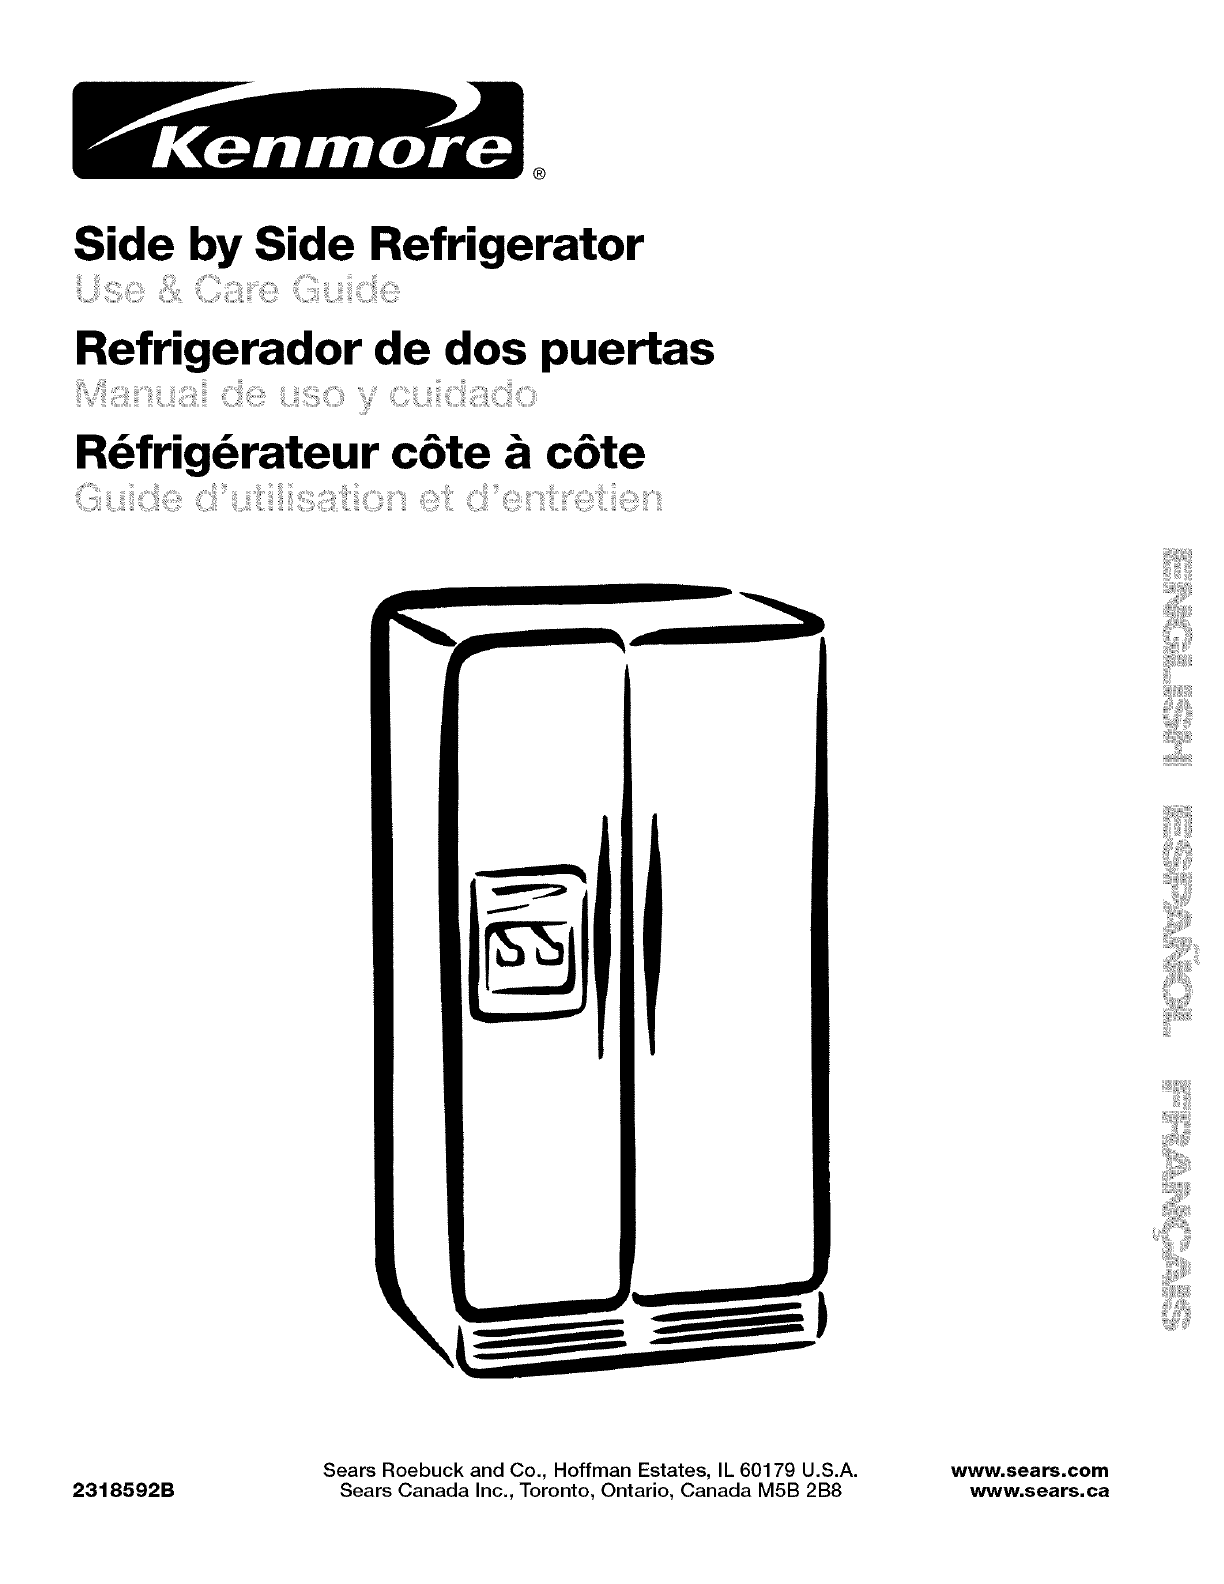 Kenmore Refrigerator Schematic Diagram | Wiring Liry on